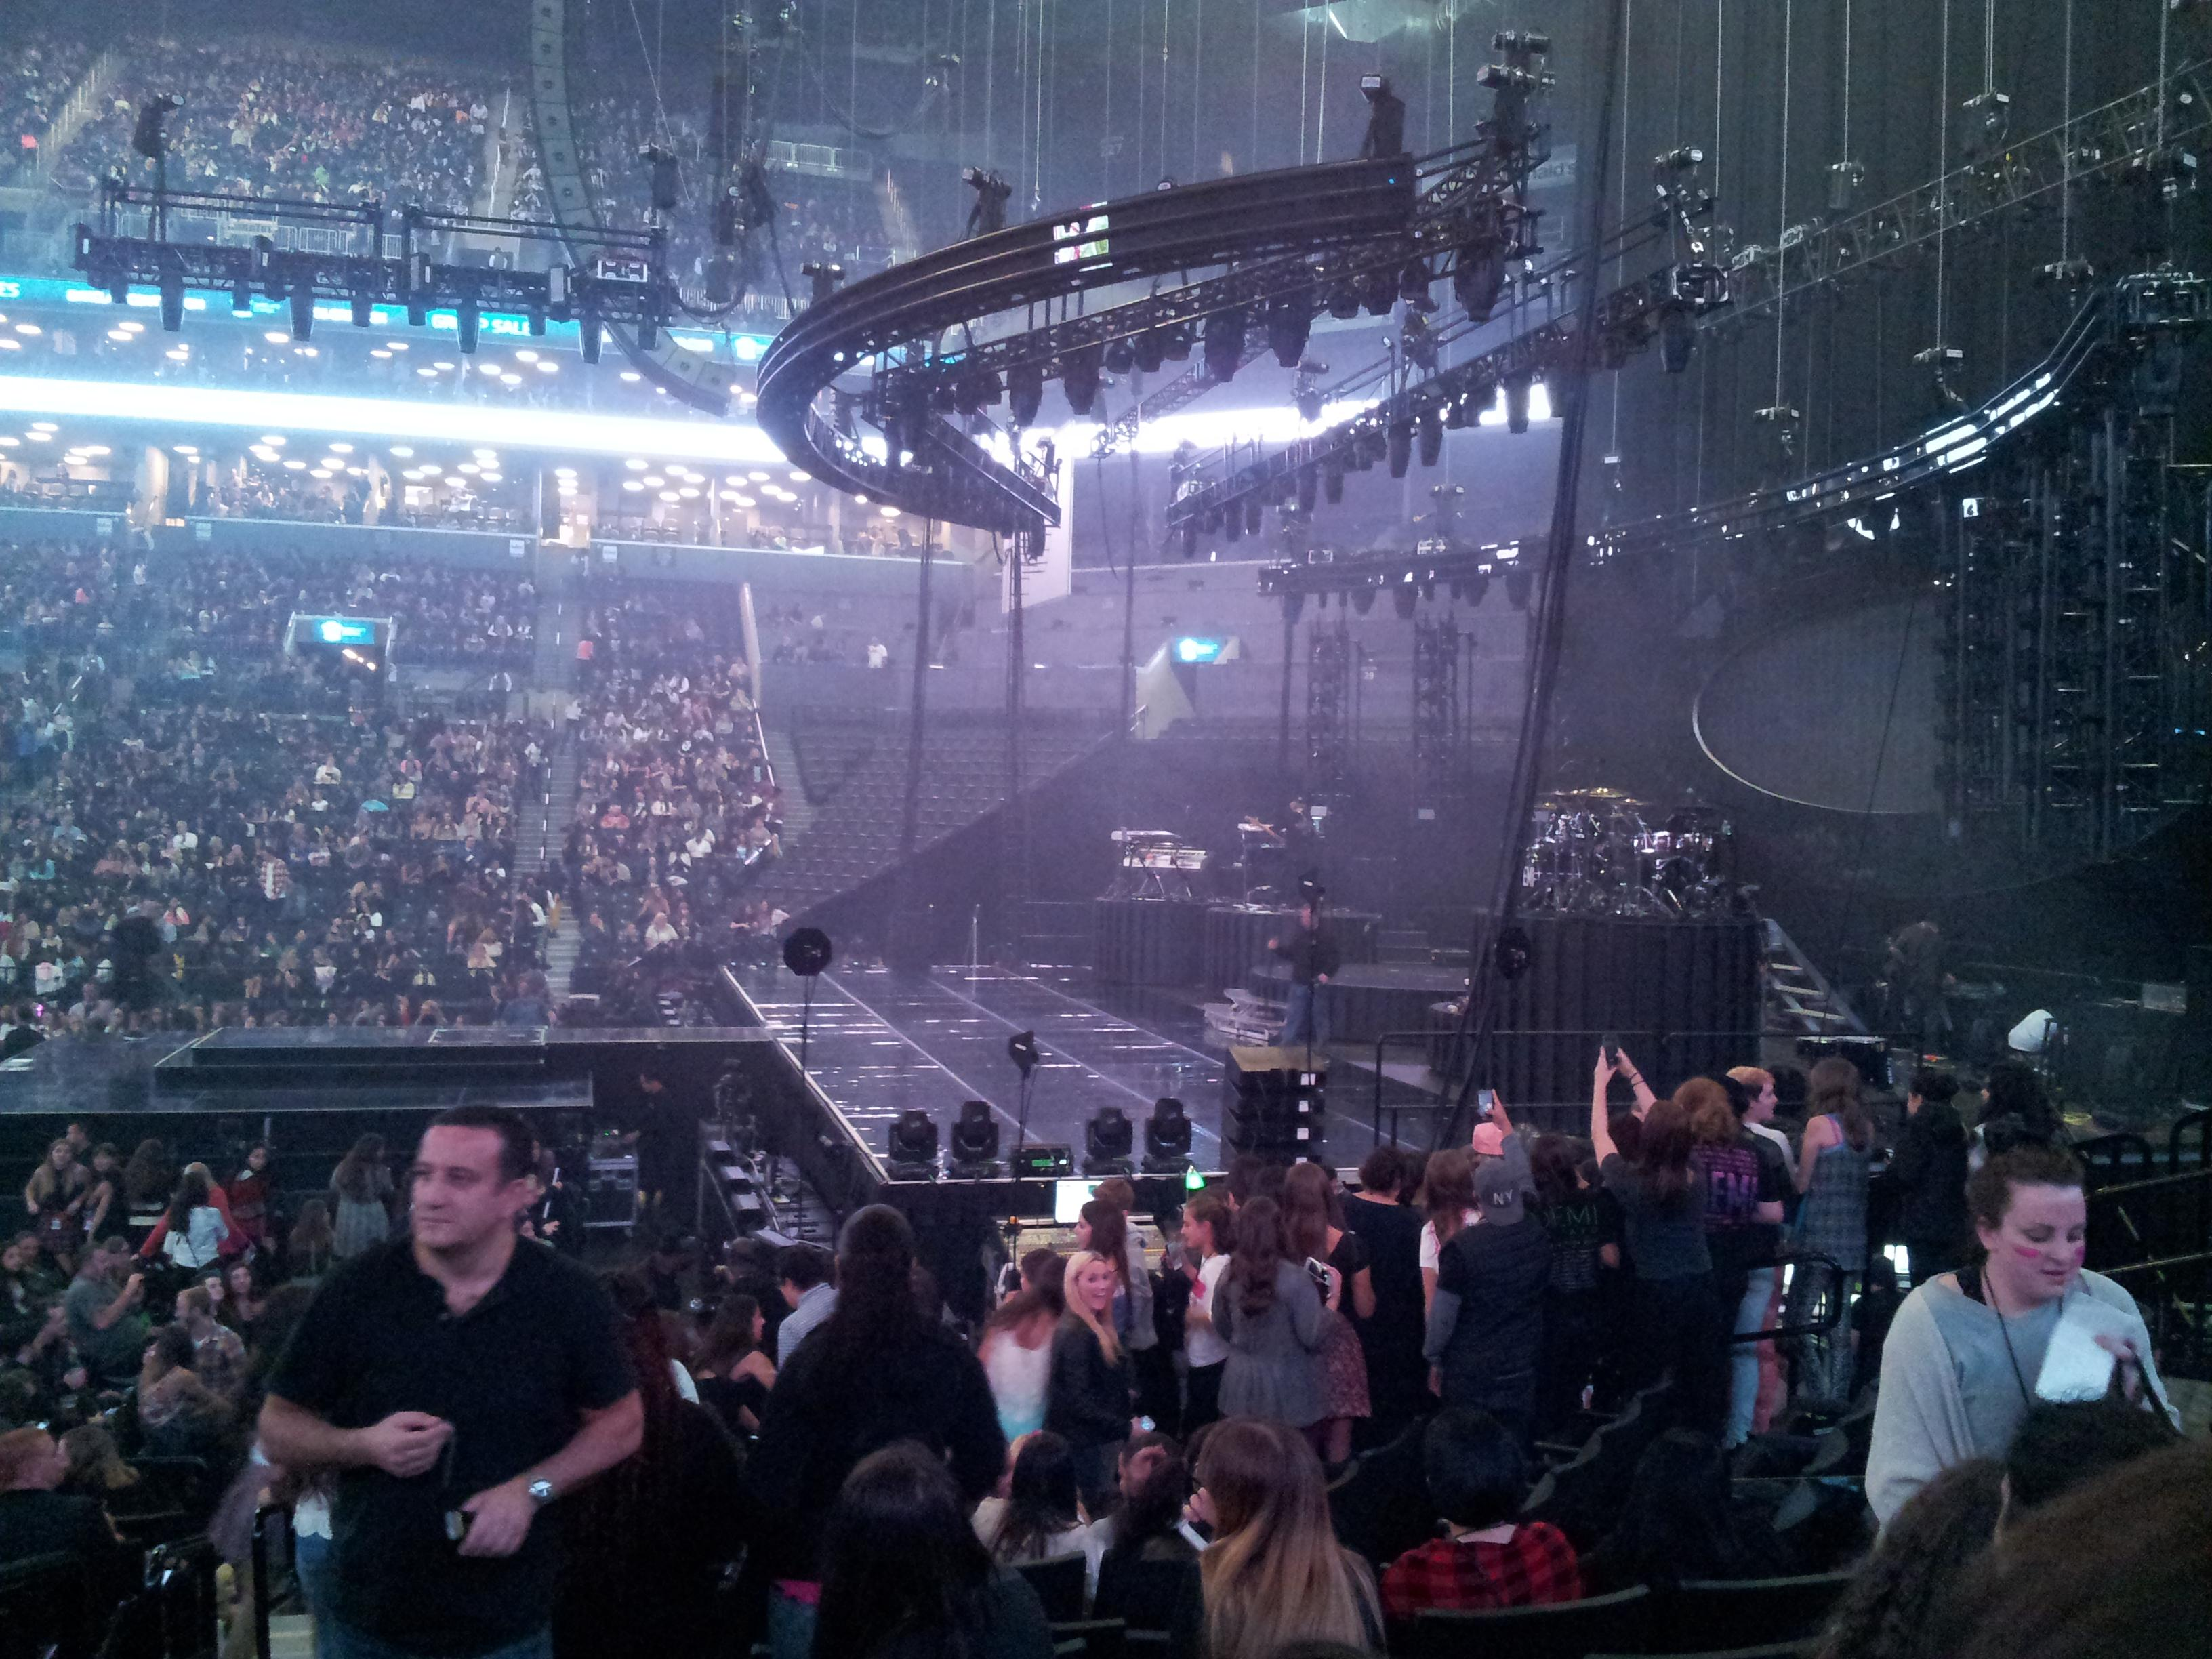 Barclays Center Section 6 Row 12 Seat 7